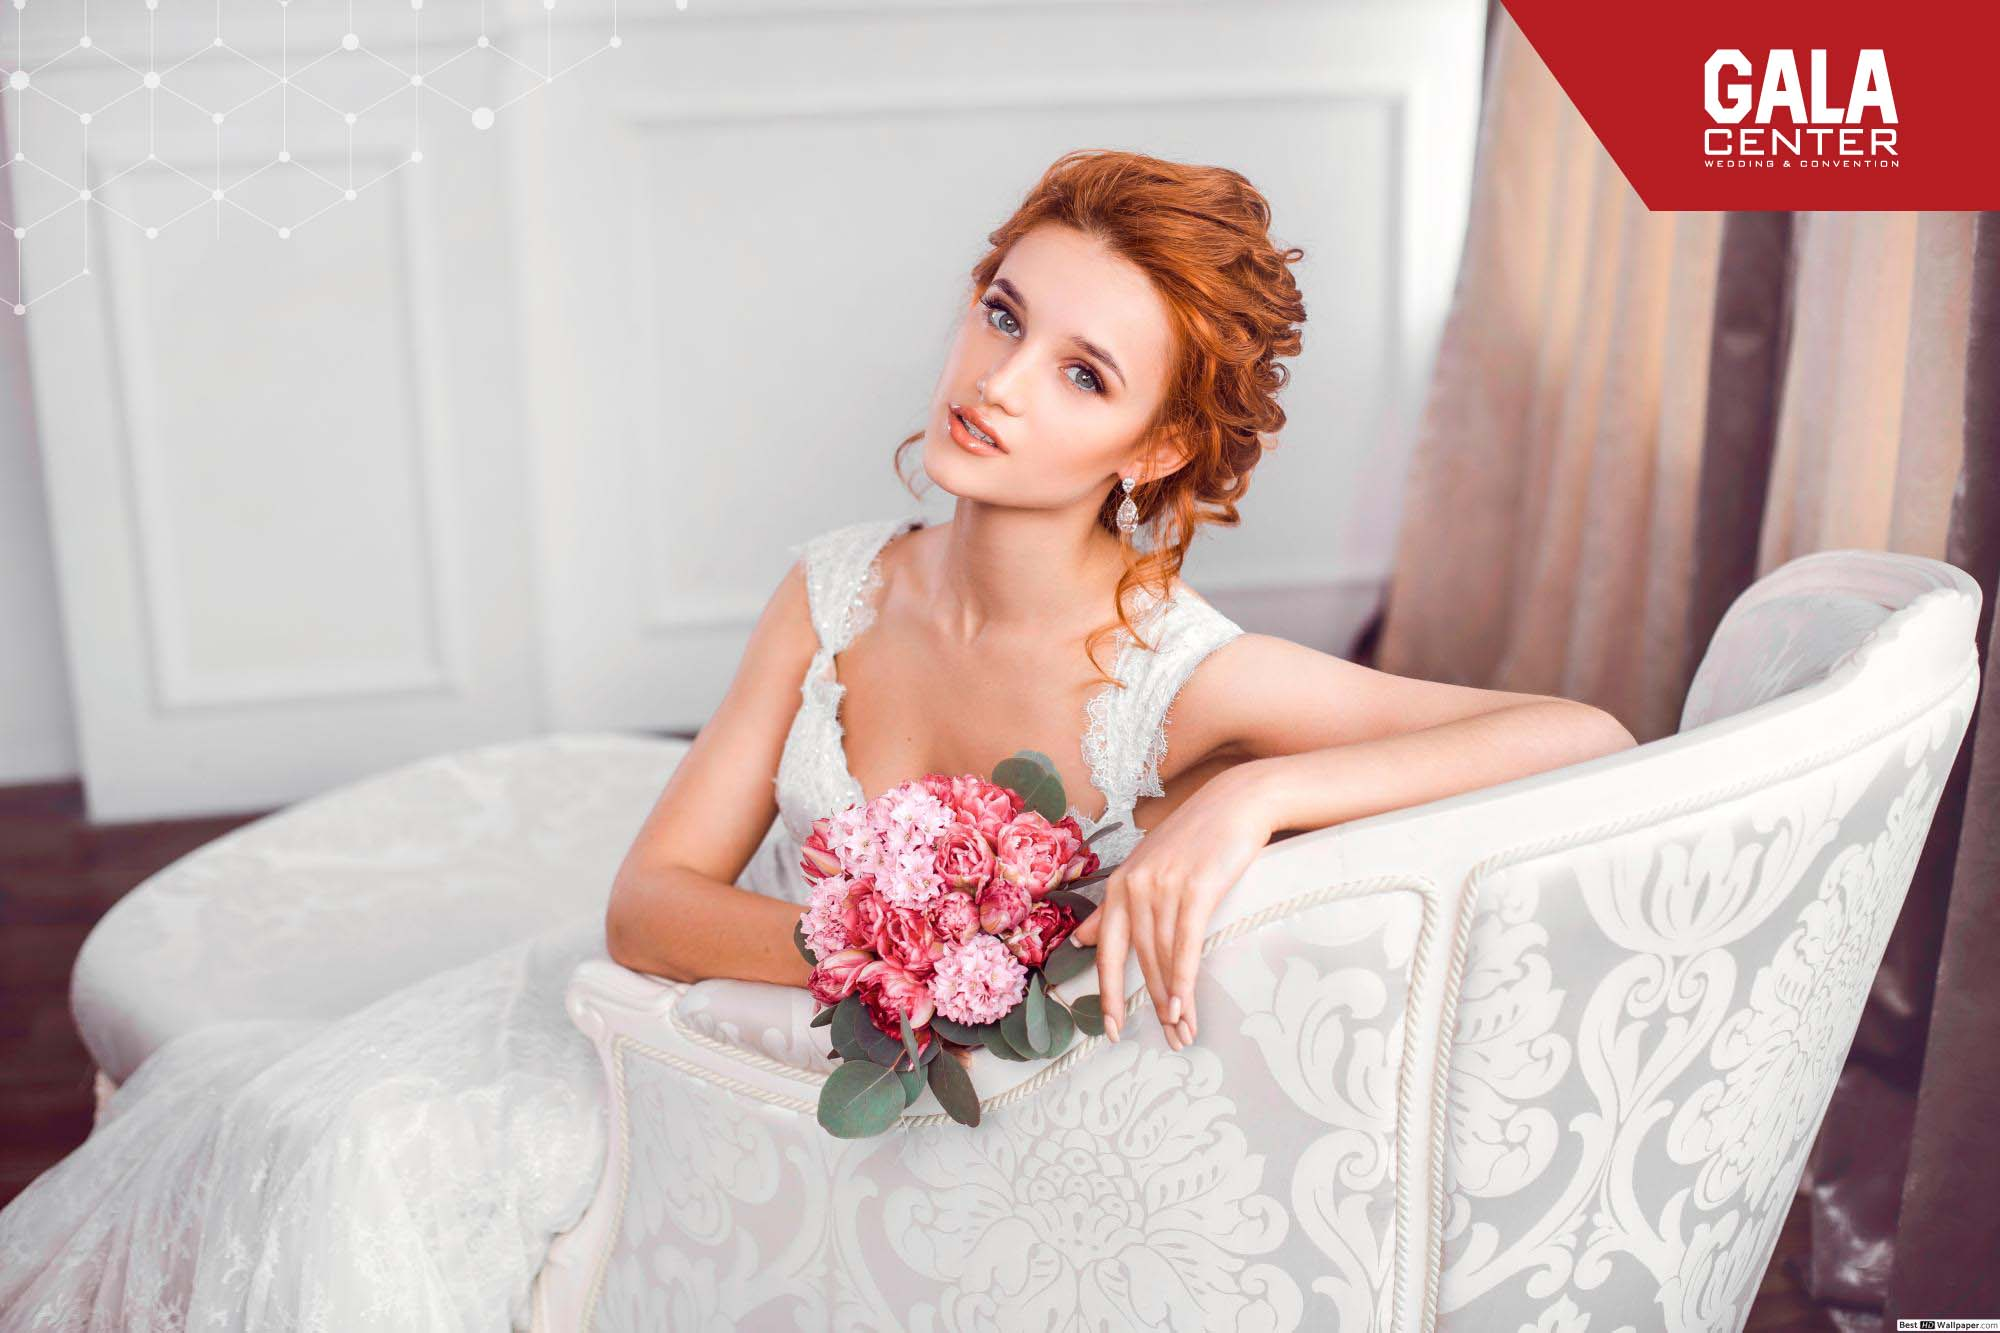 bride-wedding-dress-wallpaper-2000x1333-3196_39